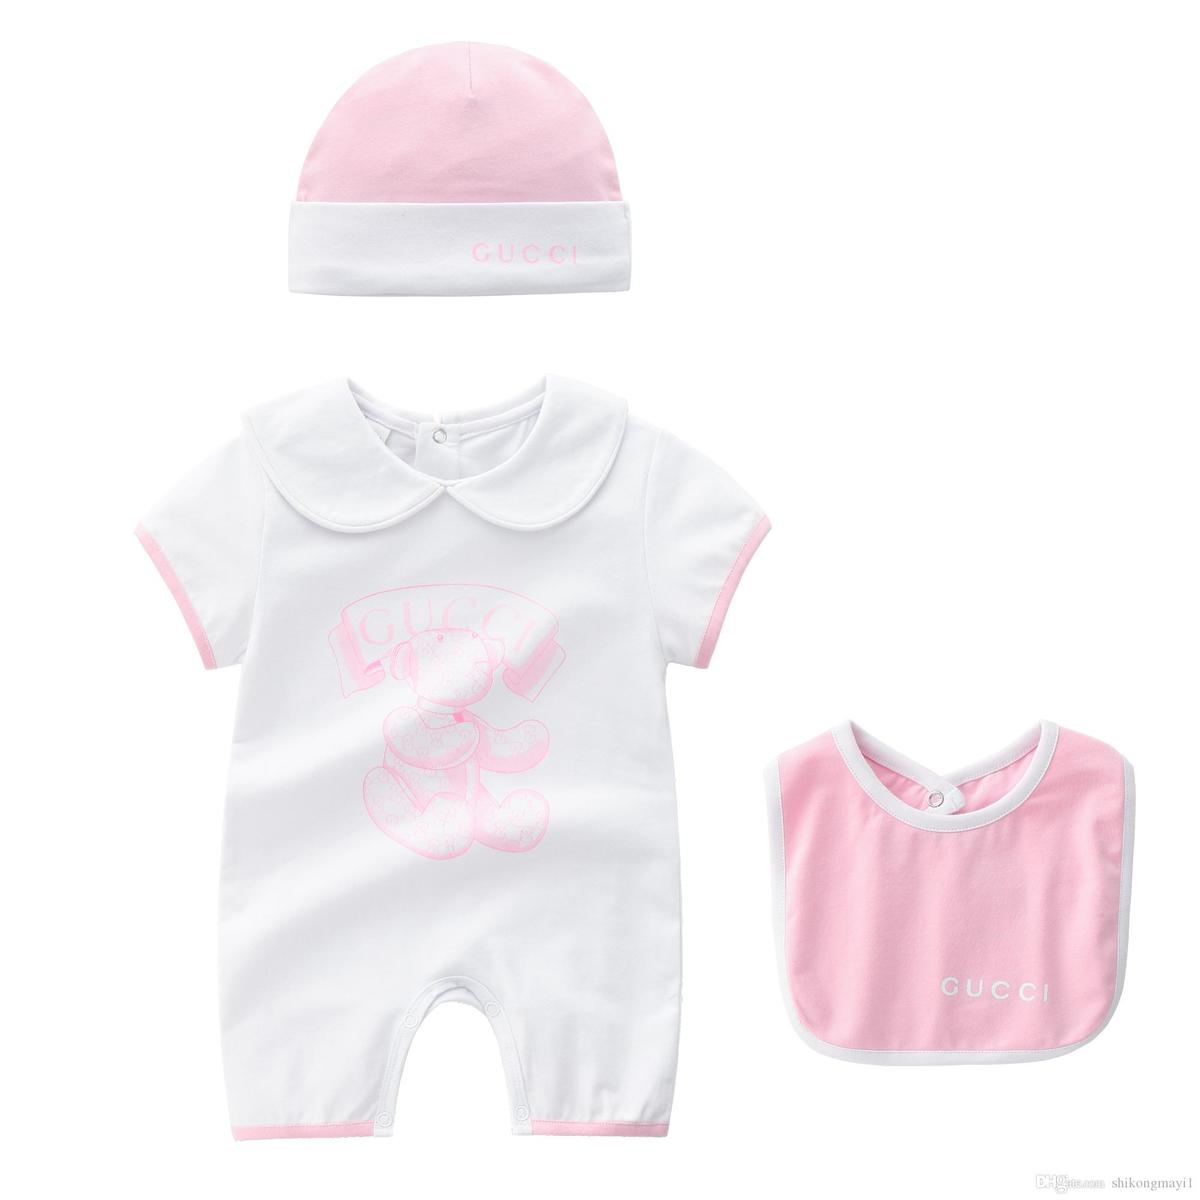 Cute Tokyo Ghoul Climbing Clothes For Newborn Baby White